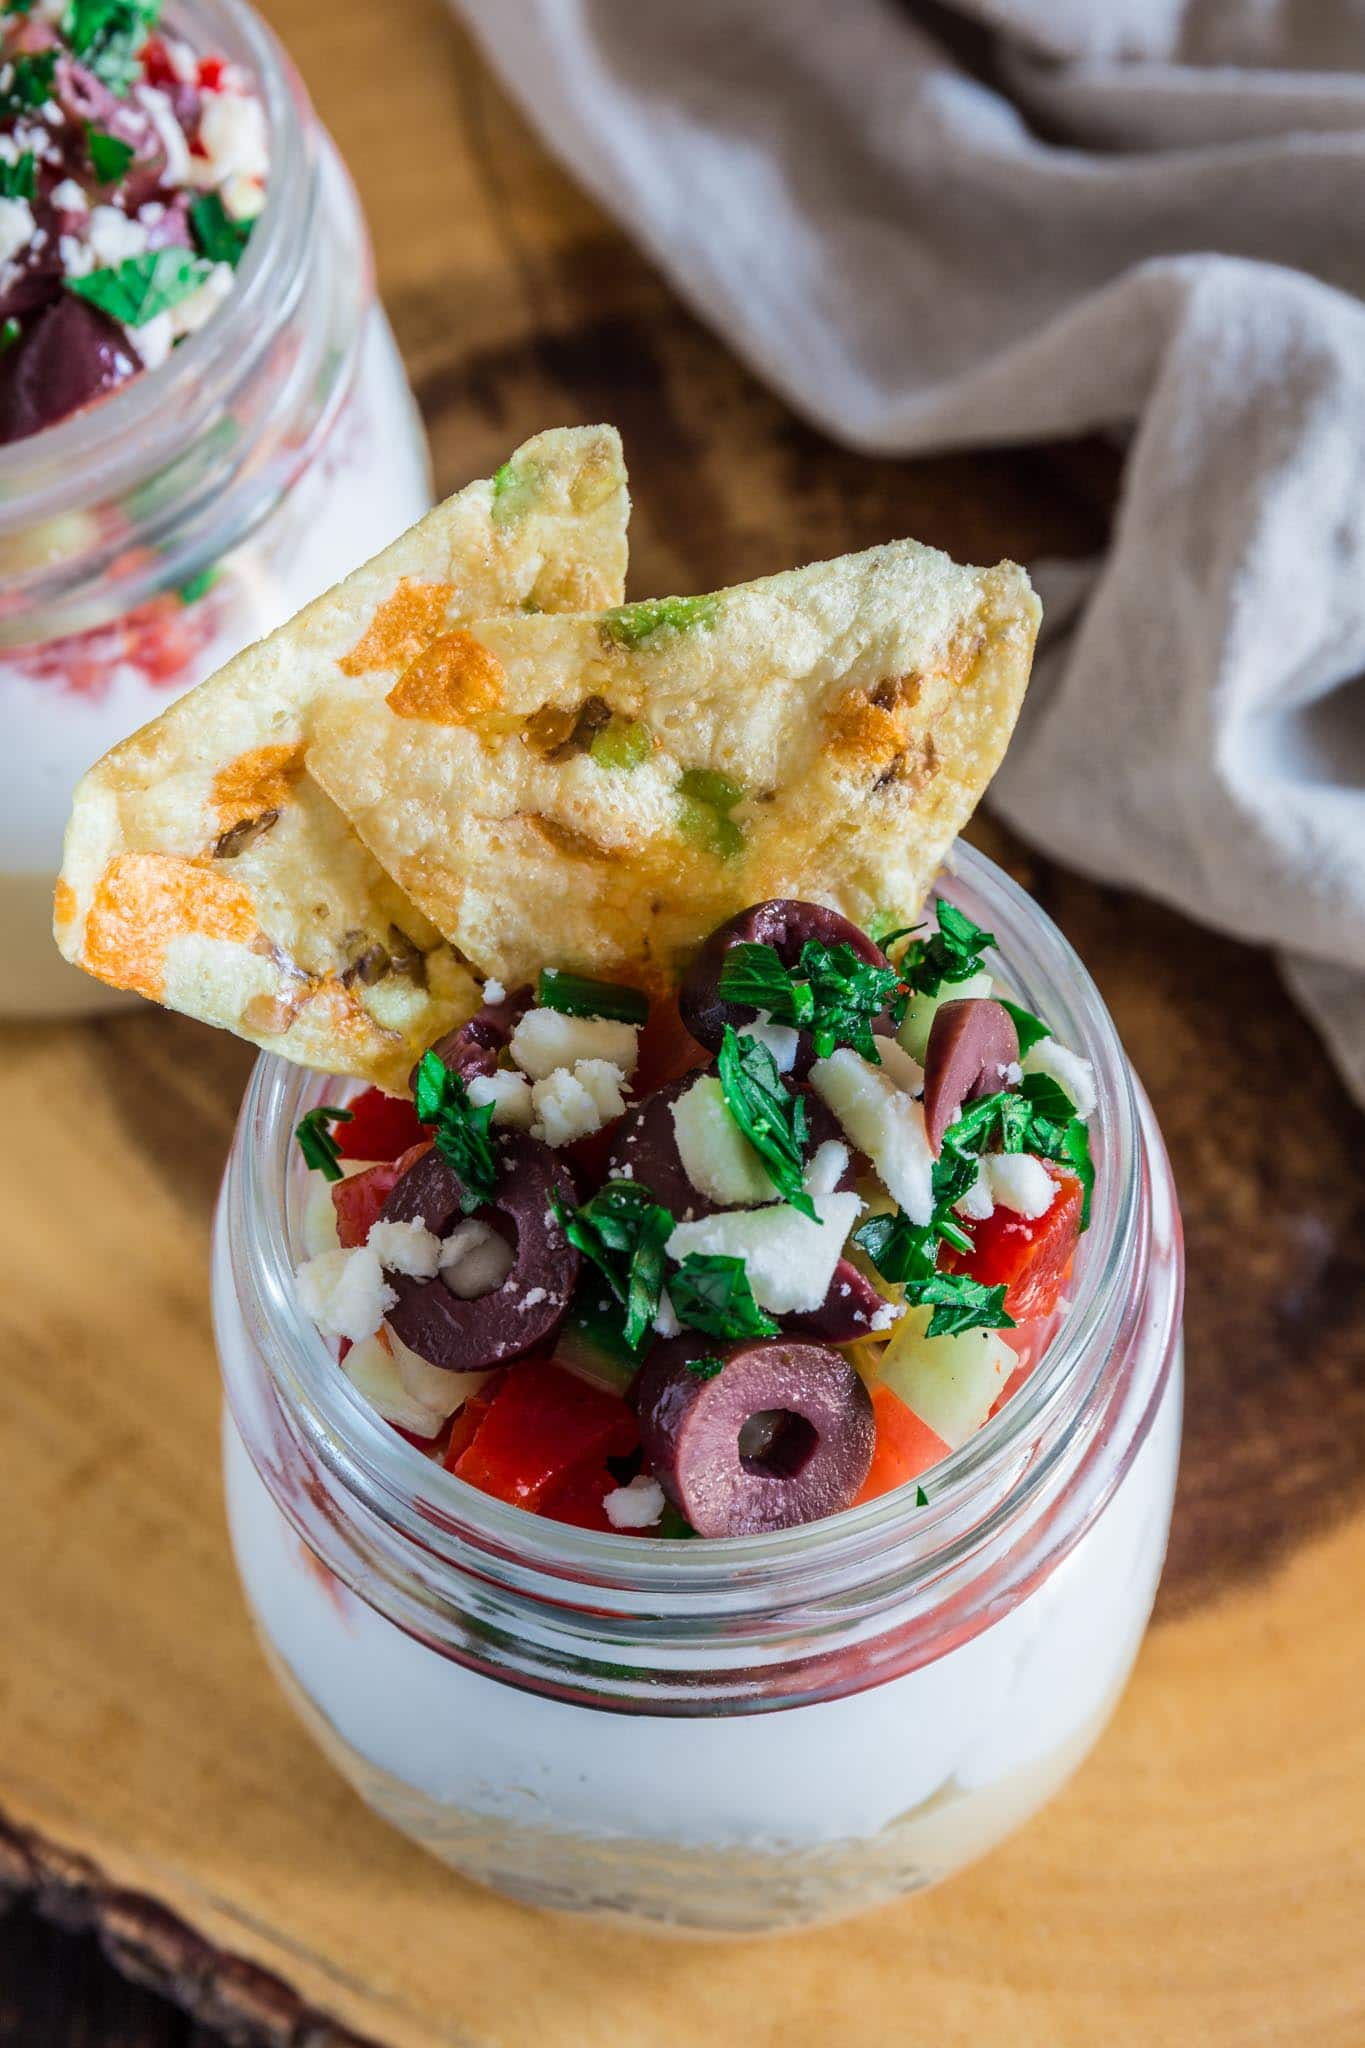 Seven Layer Mediterranean Dip | www.oliviascuisine.com | Light, healthy and perfect for entertaining during the warm weather, this Seven Layer Mediterranean Dip is filled with all the greek flavors we all love: hummus, Greek yogurt, veggies, feta and olives. I like to serve it in individual cups so it stays fresh and nobody needs to worry about double dippers! ? (Recipe by @oliviascuisine.)